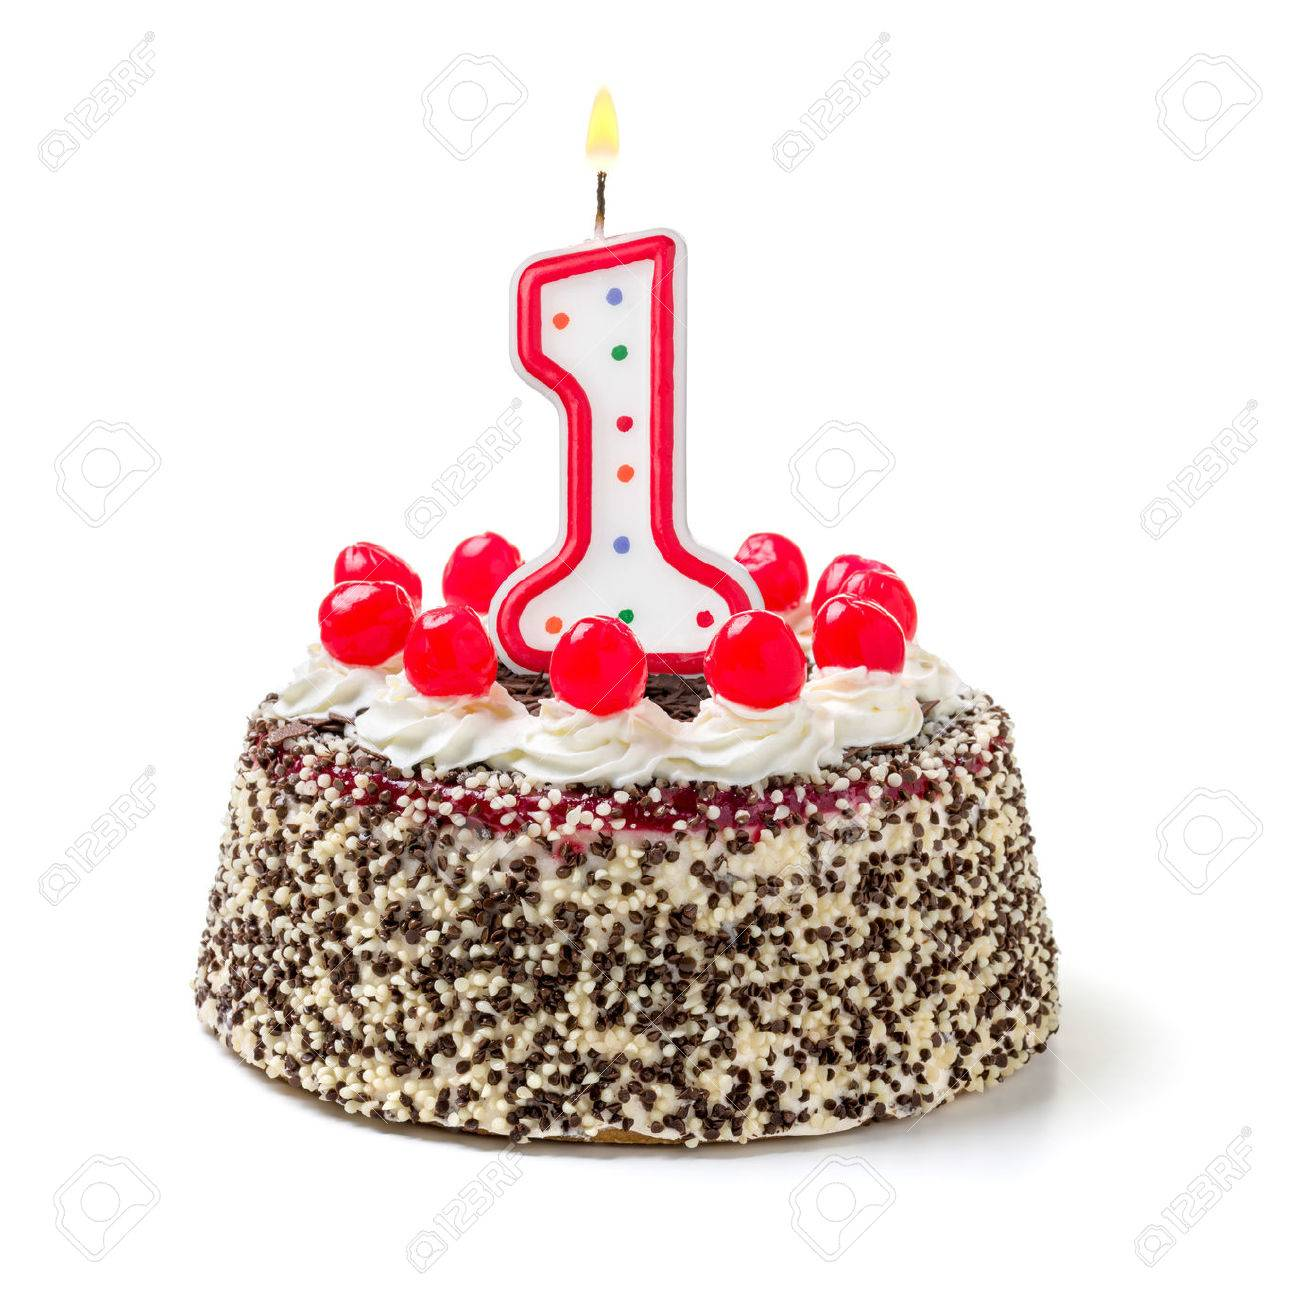 Birthday Cake With Burning Candle Number 1 Stock Photo